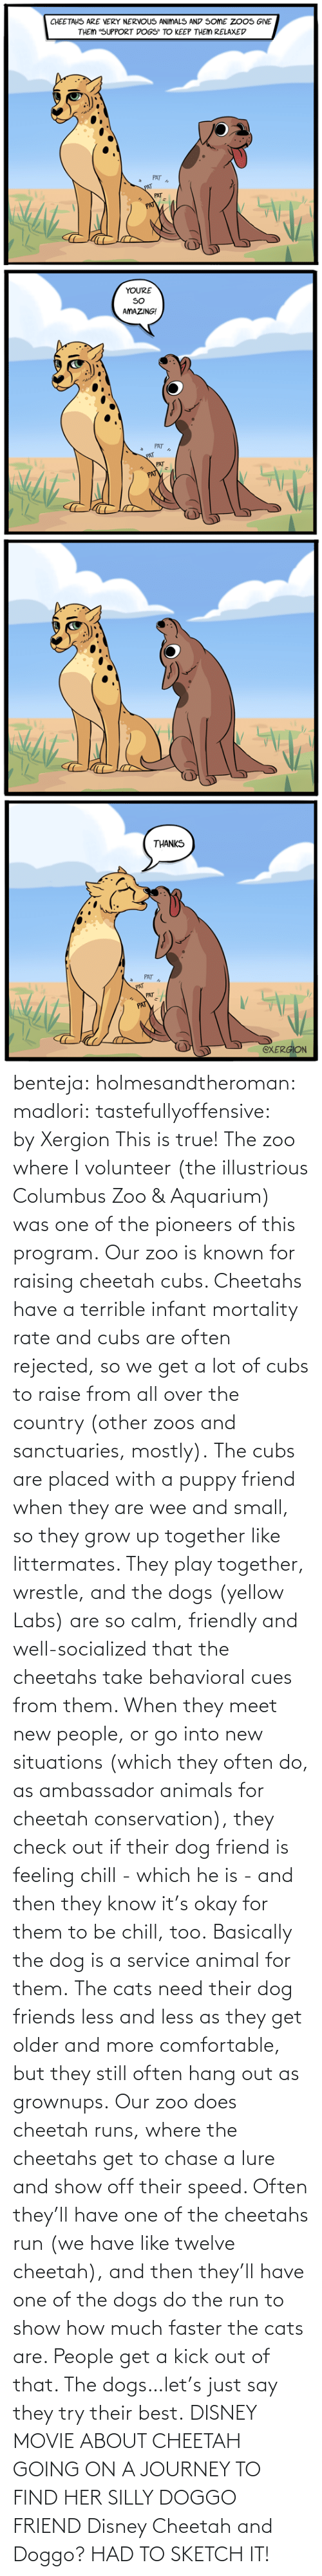 yellow: benteja:  holmesandtheroman:  madlori:  tastefullyoffensive: by Xergion This is true! The zoo where I volunteer (the illustrious Columbus Zoo & Aquarium) was one of the pioneers of this program. Our zoo is known for raising cheetah cubs. Cheetahs have a terrible infant mortality rate and cubs are often rejected, so we get a lot of cubs to raise from all over the country (other zoos and sanctuaries, mostly). The cubs are placed with a puppy friend when they are wee and small, so they grow up together like littermates. They play together, wrestle, and the dogs (yellow Labs) are so calm, friendly and well-socialized that the cheetahs take behavioral cues from them. When they meet new people, or go into new situations (which they often do, as ambassador animals for cheetah conservation), they check out if their dog friend is feeling chill - which he is - and then they know it's okay for them to be chill, too. Basically the dog is a service animal for them. The cats need their dog friends less and less as they get older and more comfortable, but they still often hang out as grownups. Our zoo does cheetah runs, where the cheetahs get to chase a lure and show off their speed. Often they'll have one of the cheetahs run (we have like twelve cheetah), and then they'll have one of the dogs do the run to show how much faster the cats are. People get a kick out of that. The dogs…let's just say they try their best.   DISNEY MOVIE ABOUT CHEETAH GOING ON A JOURNEY TO FIND HER SILLY DOGGO FRIEND  Disney Cheetah and Doggo? HAD TO SKETCH IT!